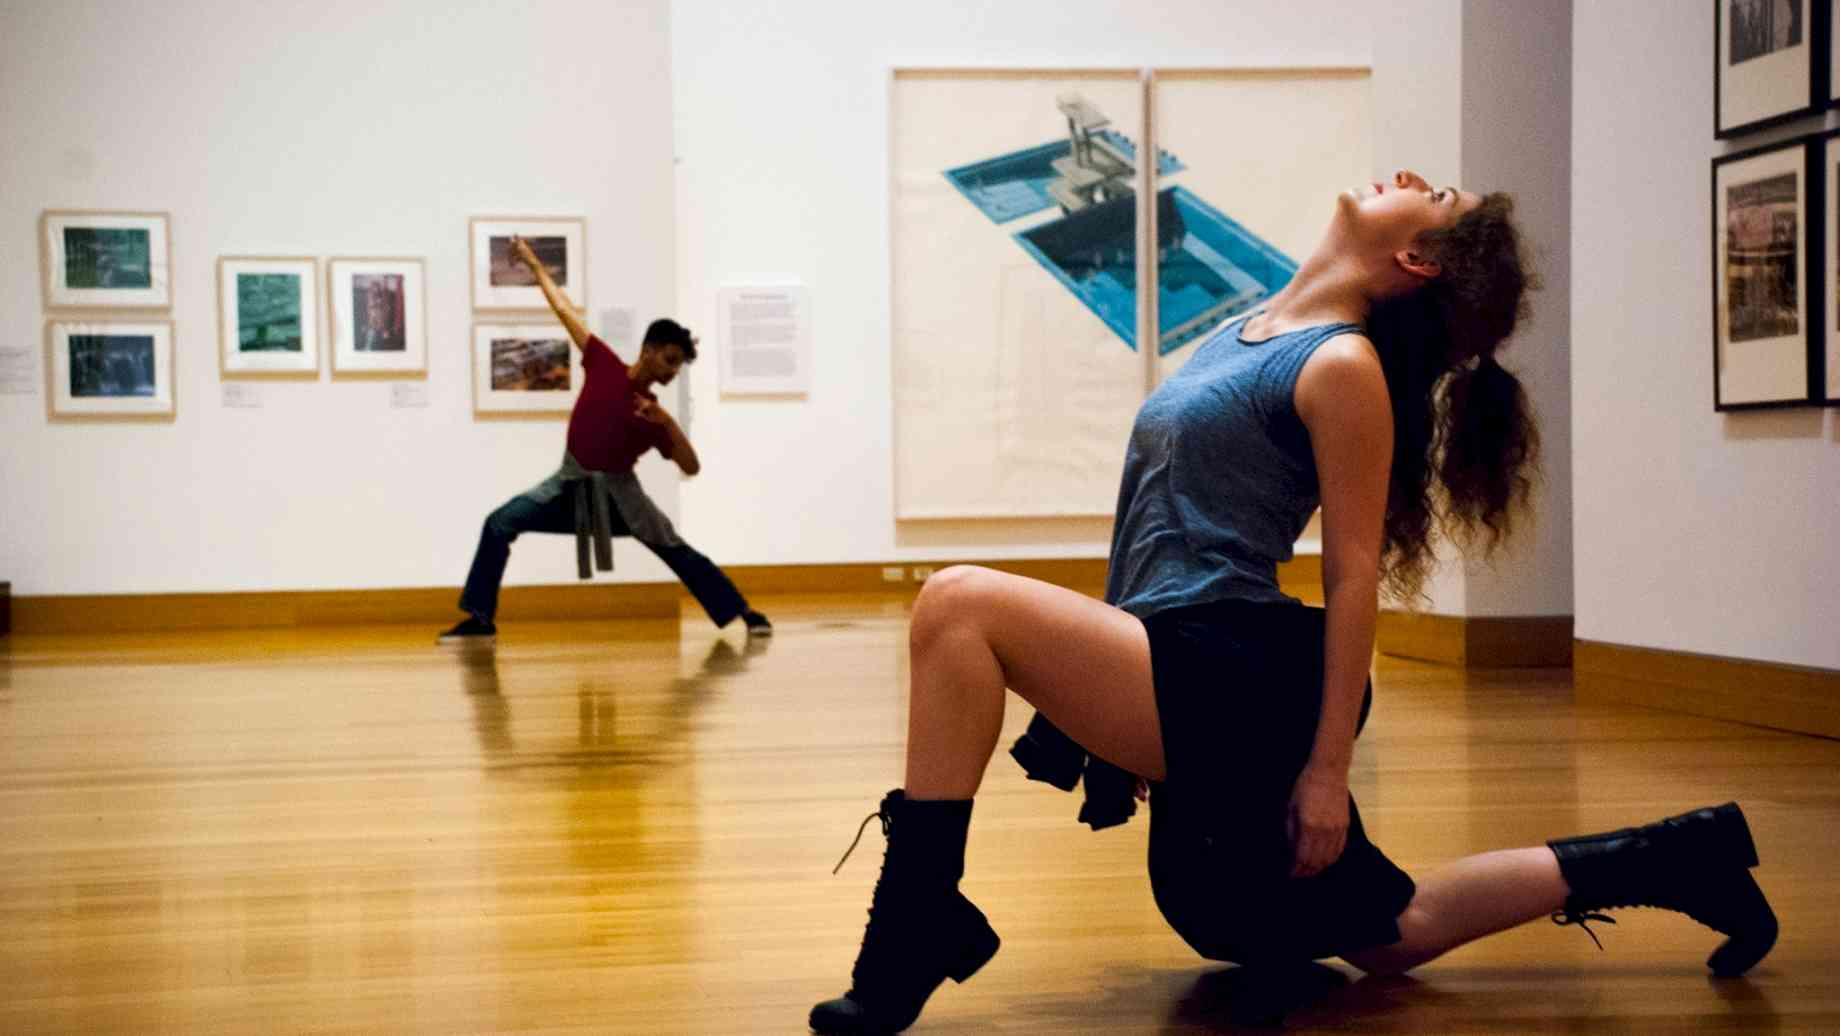 Esrom Williams (BFA Dance 2017) and Breena Cocco (BA Dance 2017) in duet in the contemporary wing of the Harn Museum.